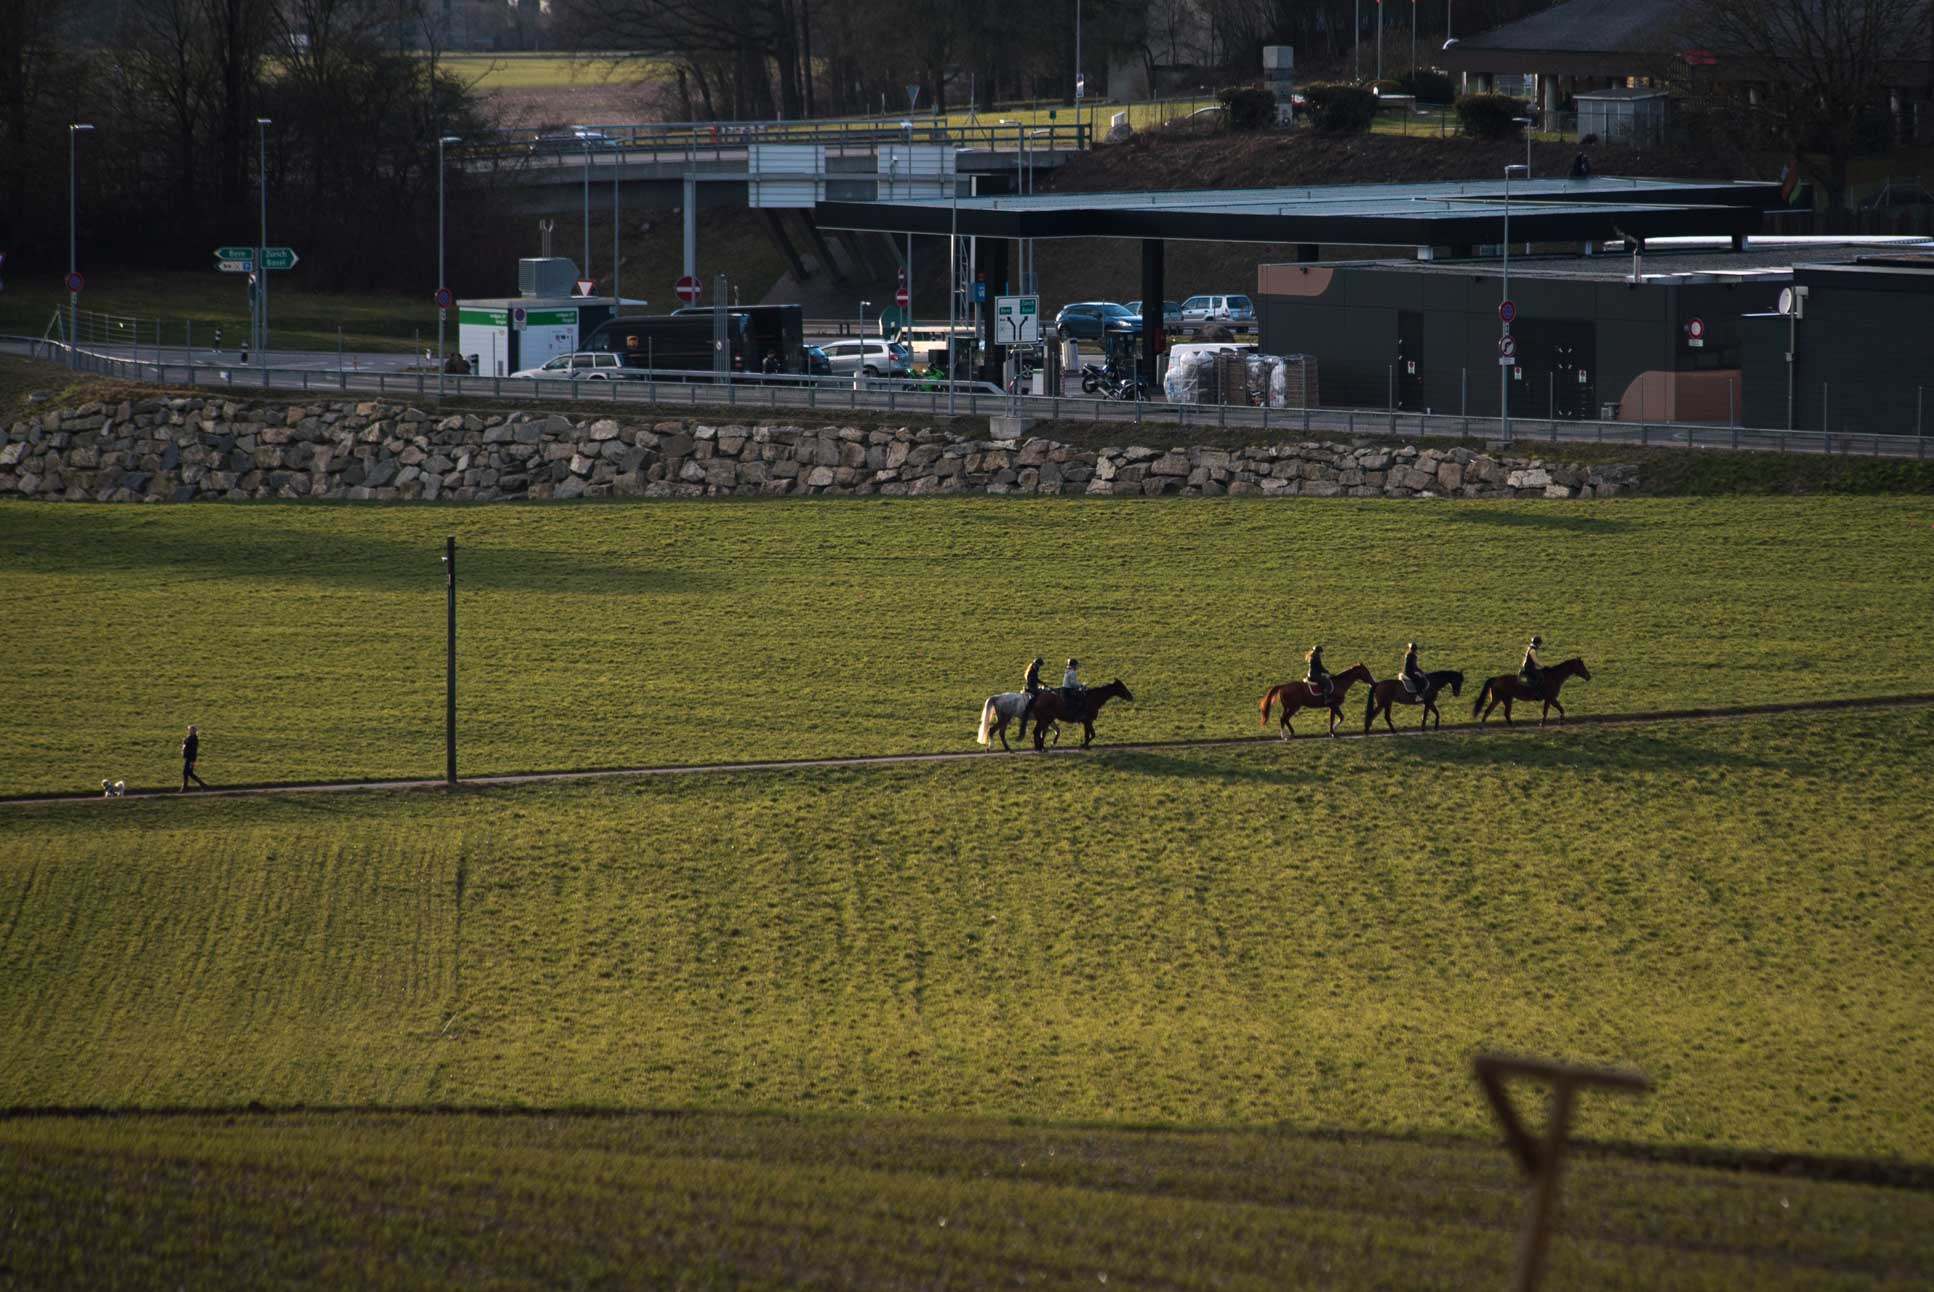 Photo by Pascal Sommer - Horses headed for the highway